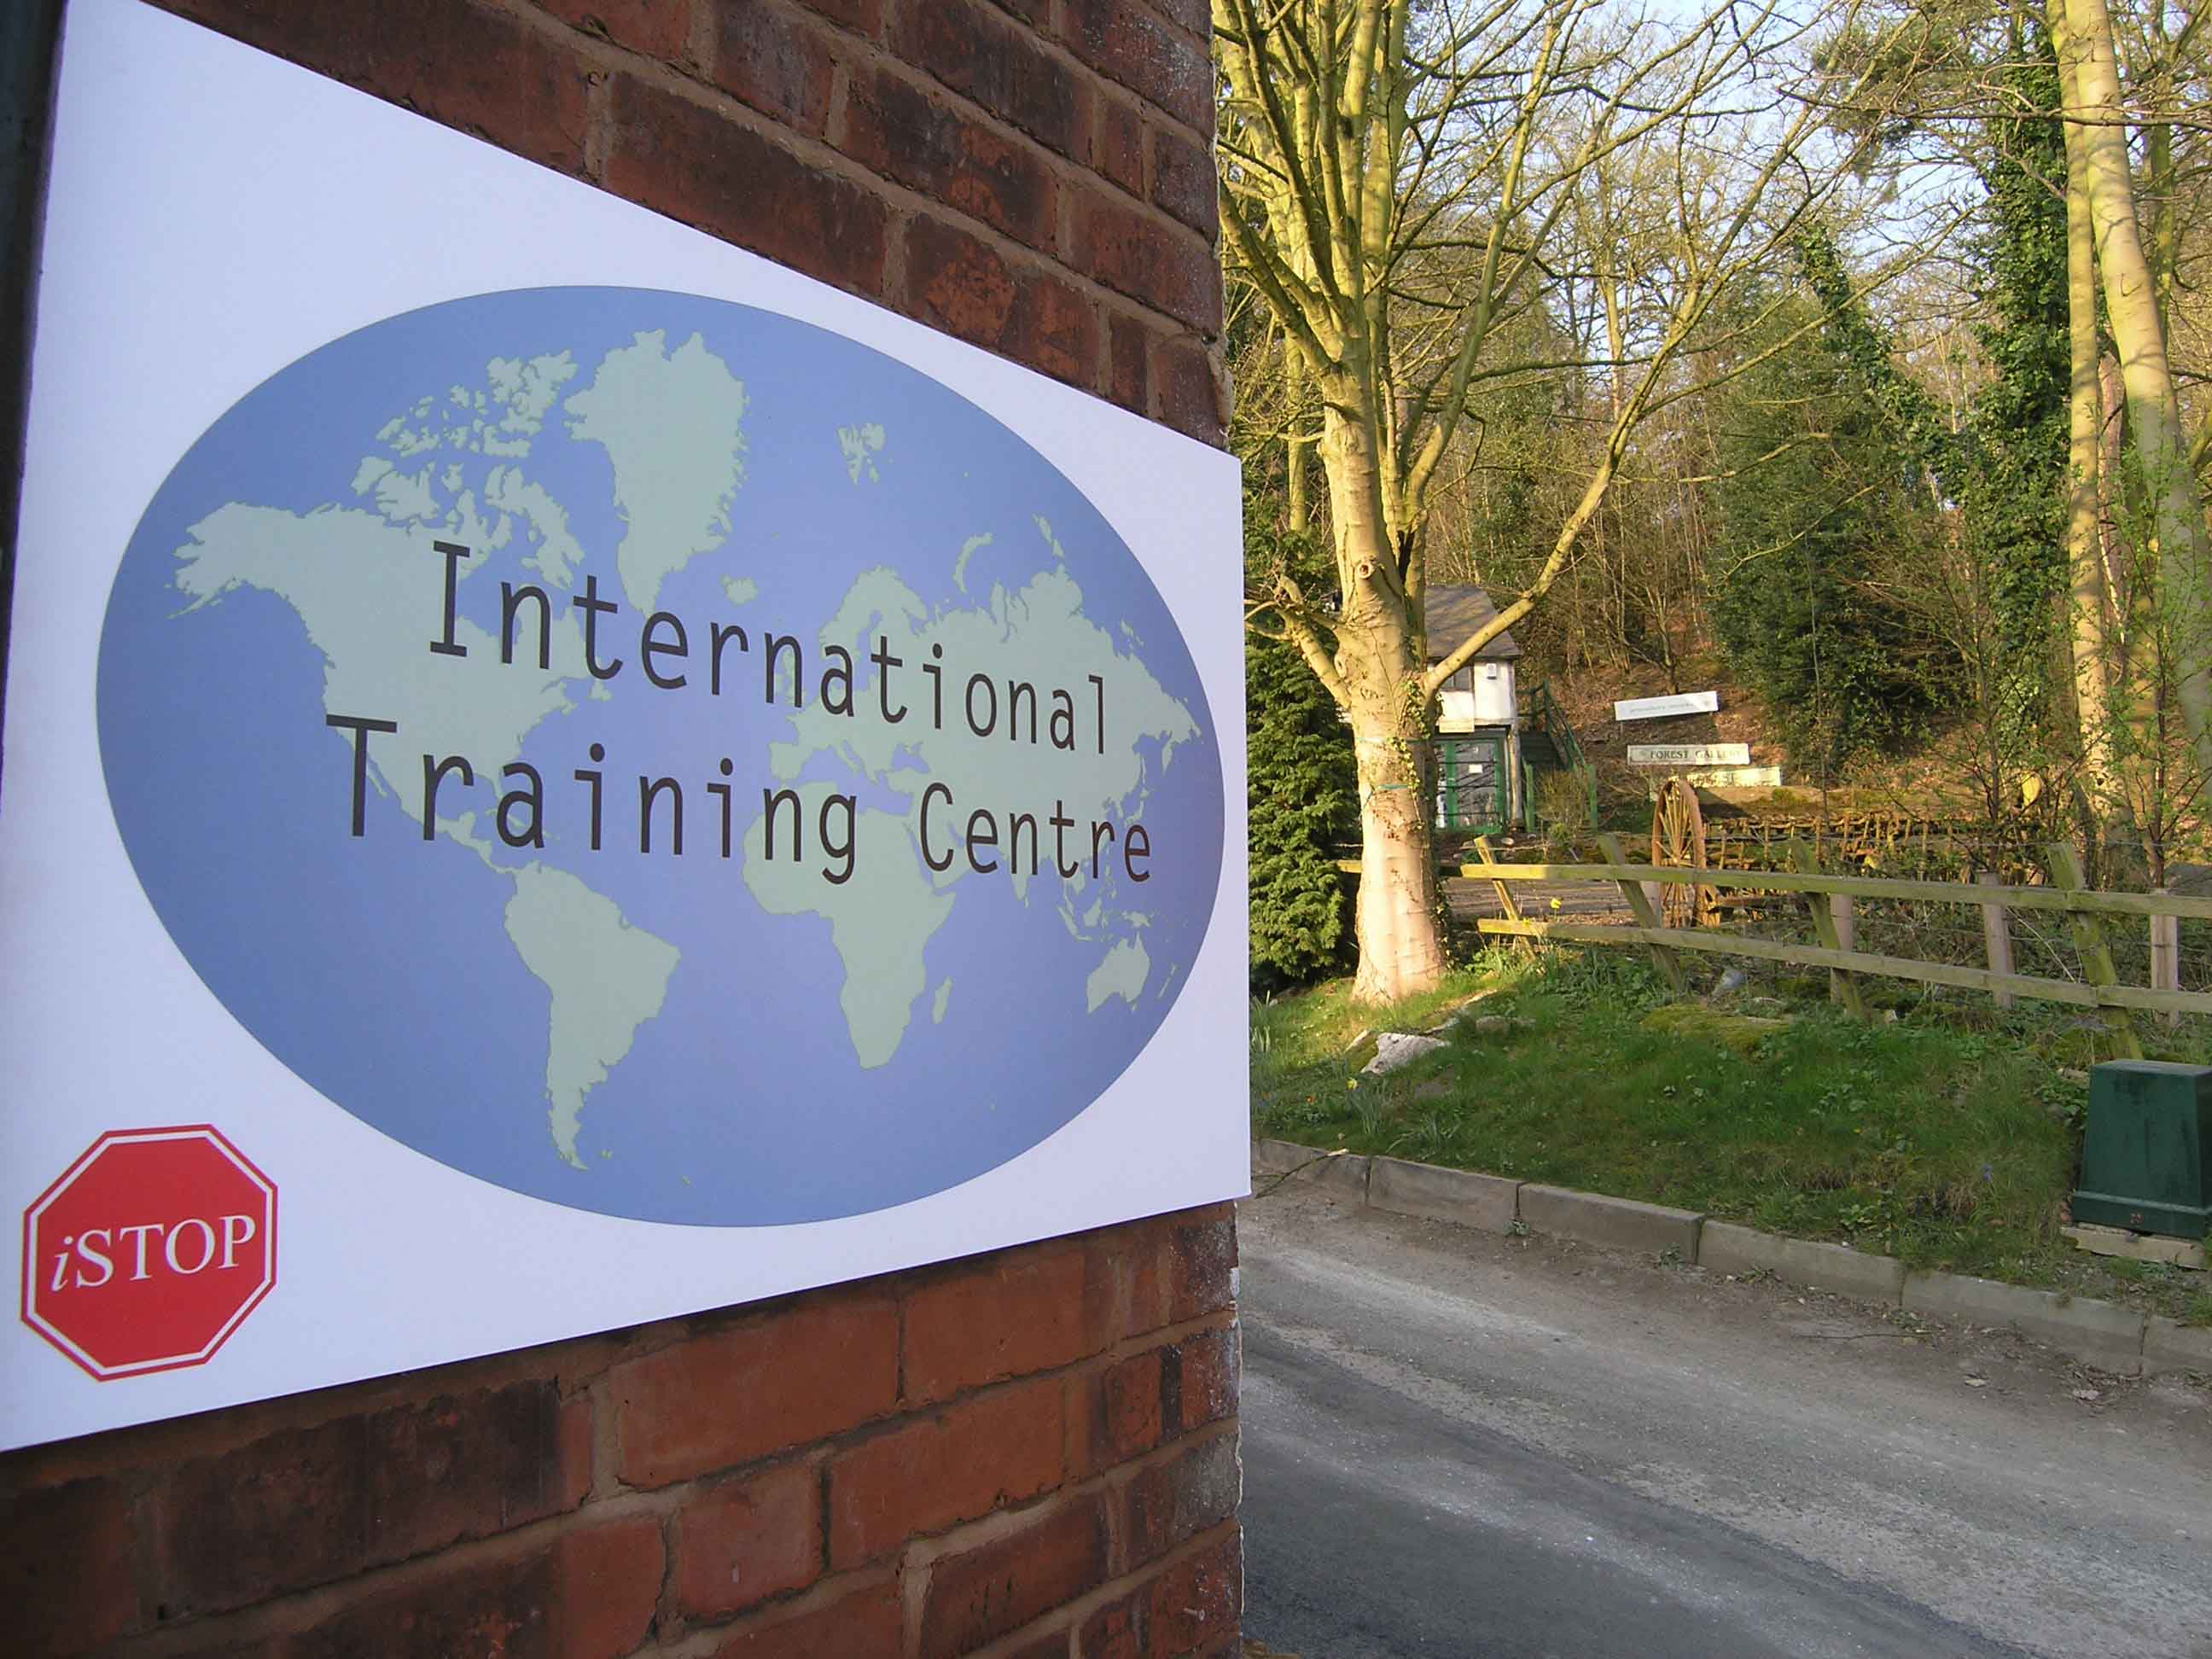 International Training Centre